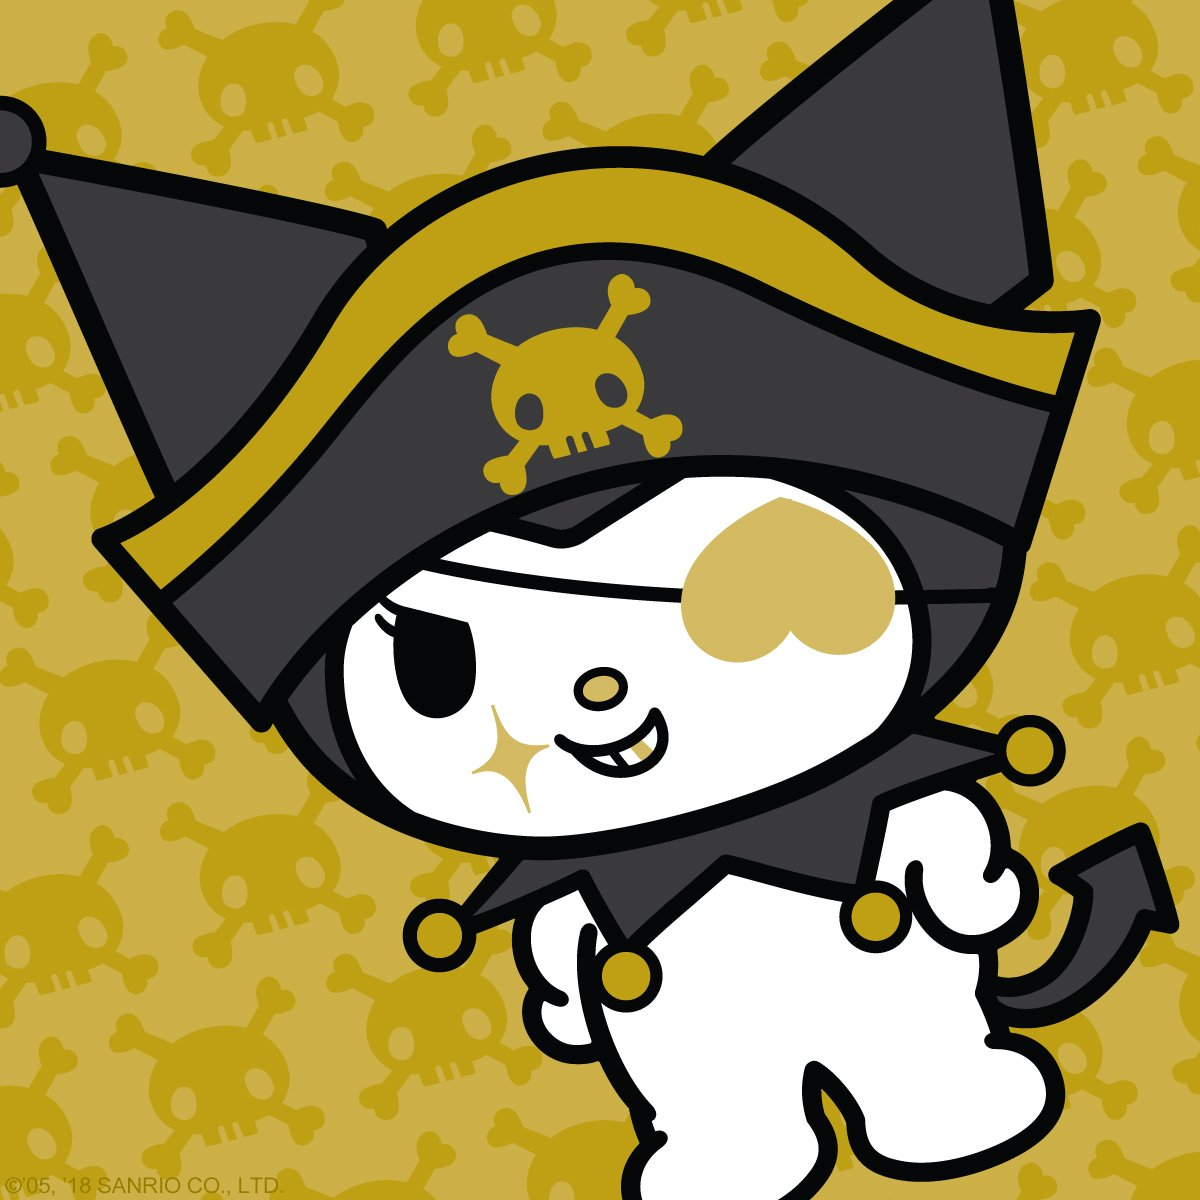 Shiver me timbers, if it ain't #TalkLikeAPirateDay. #Kuromi is on deck to batten down the hatches for all ye scallywags!